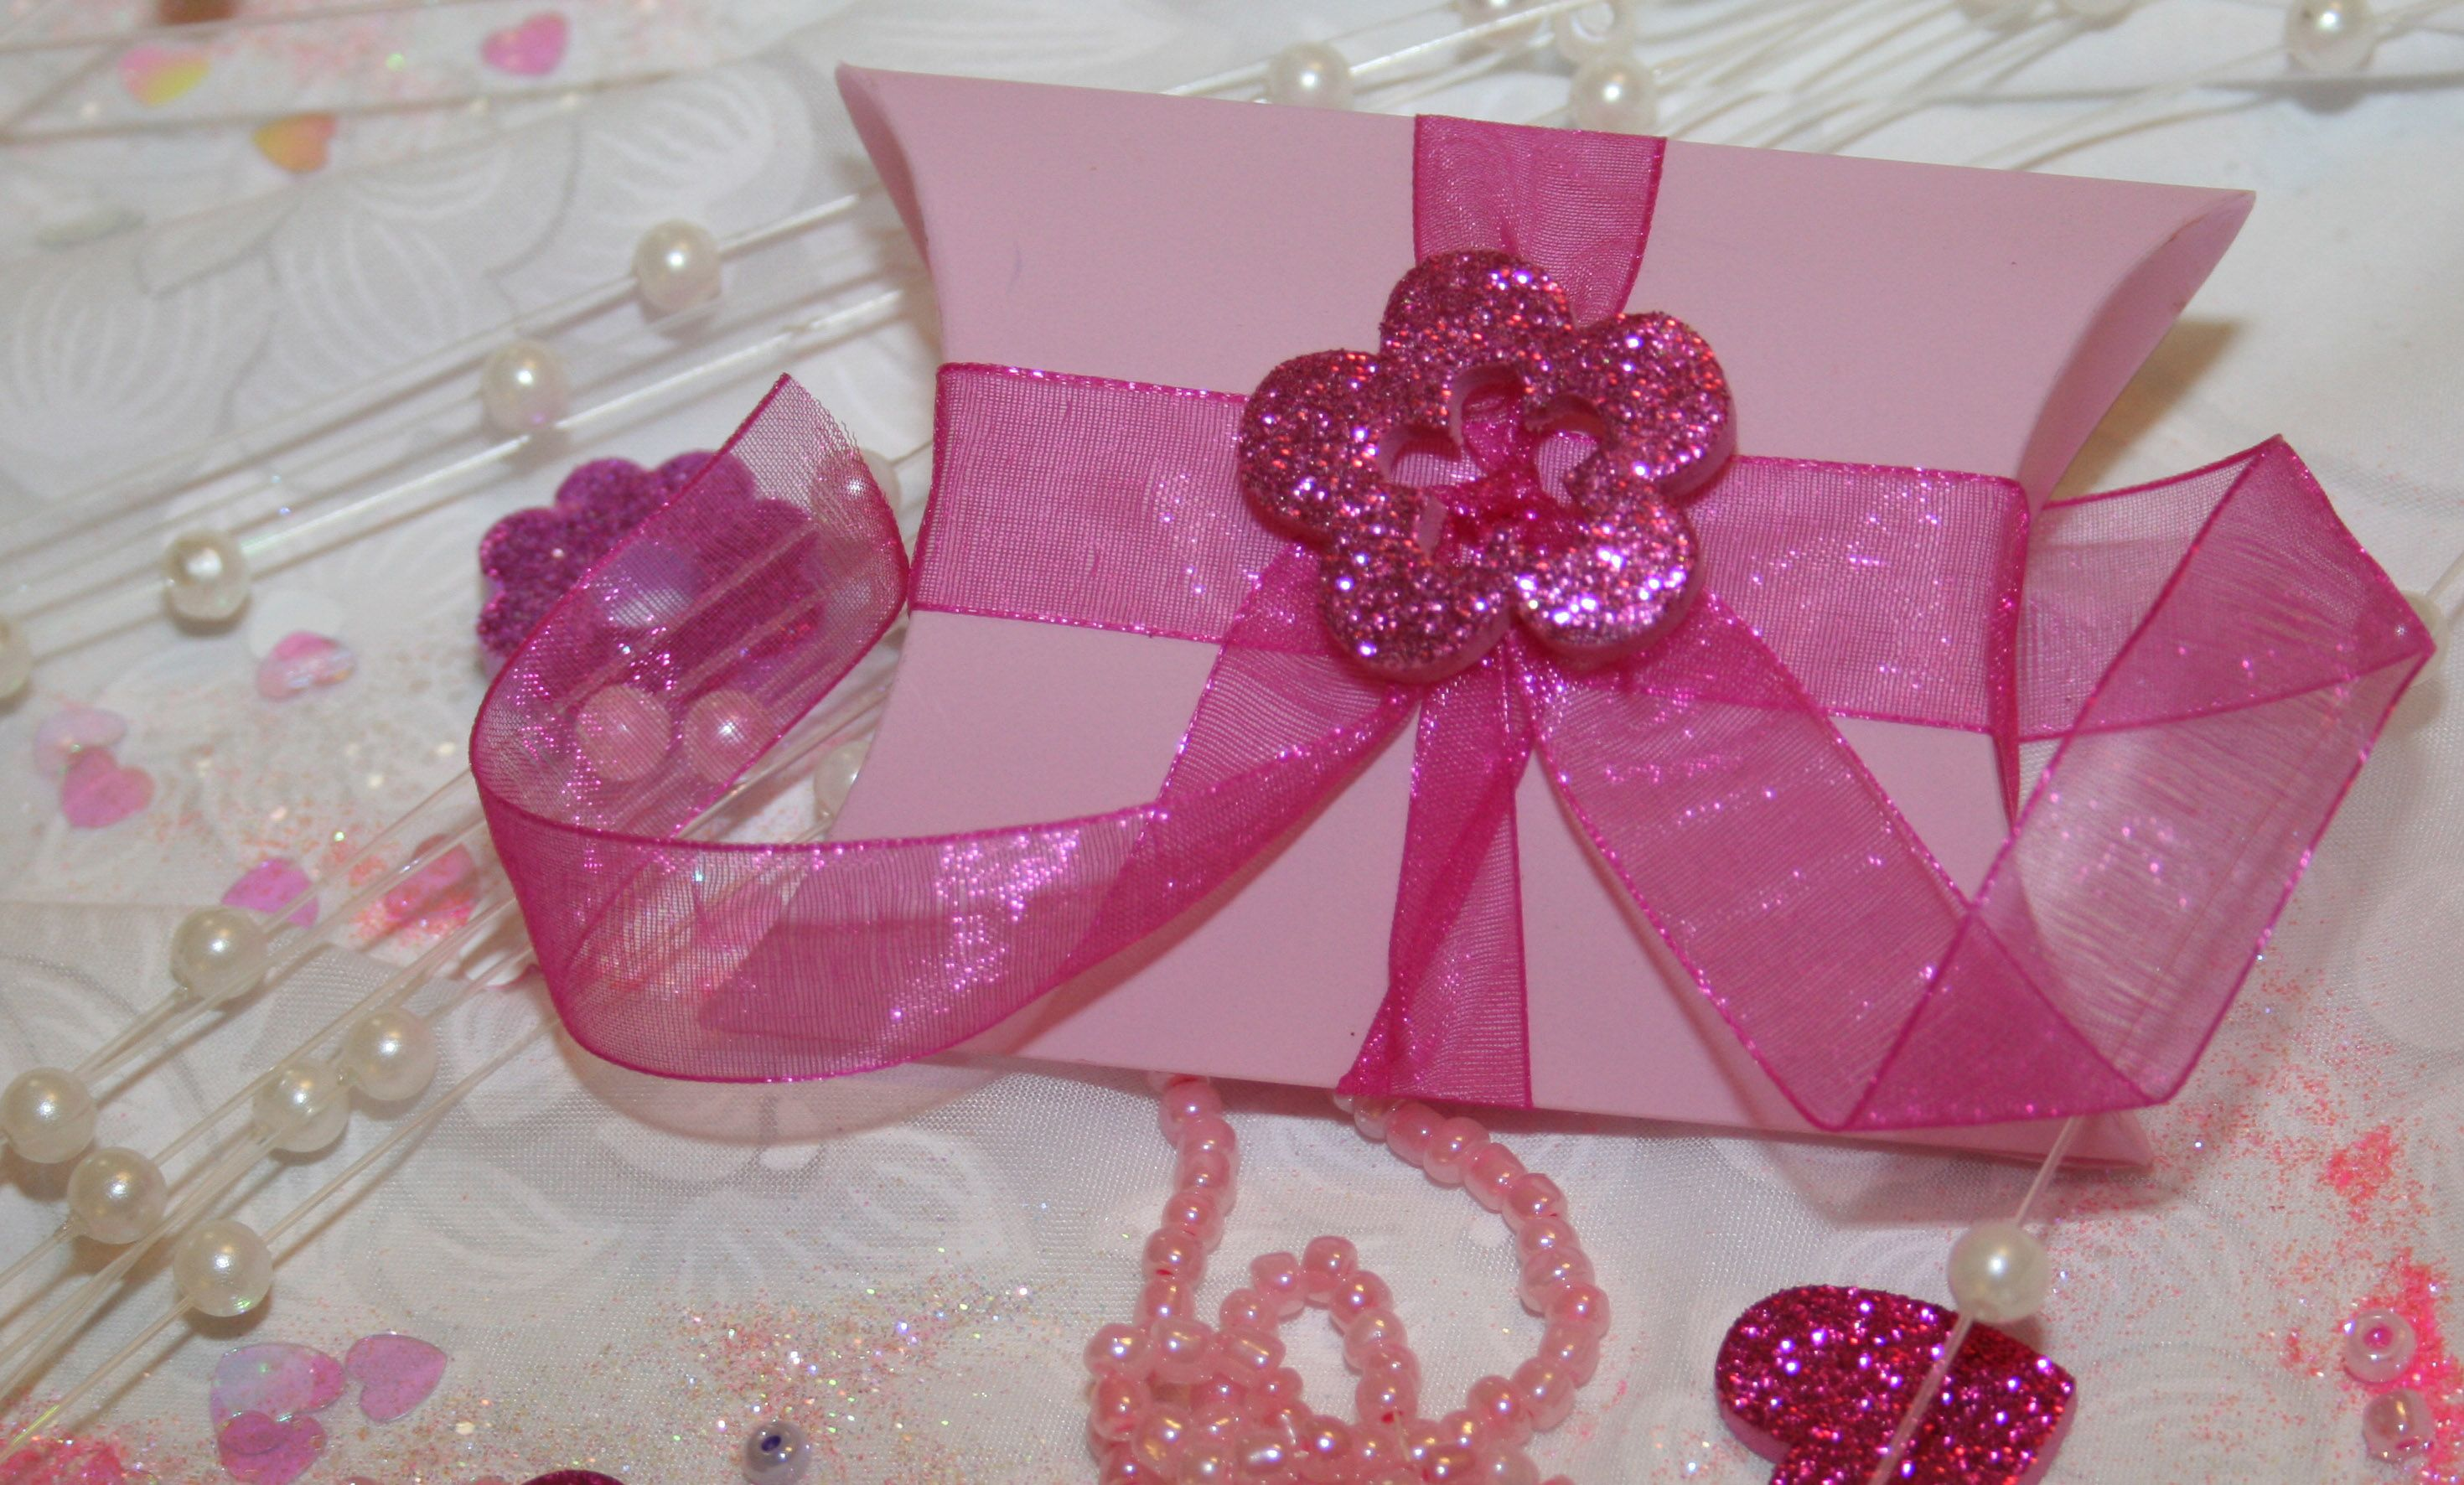 Baby shower, Halloween, Birthday, bachelorette party, Bridal shower, Christmas, New year, Graduation, Wedding etc... Party favor for any event when customized